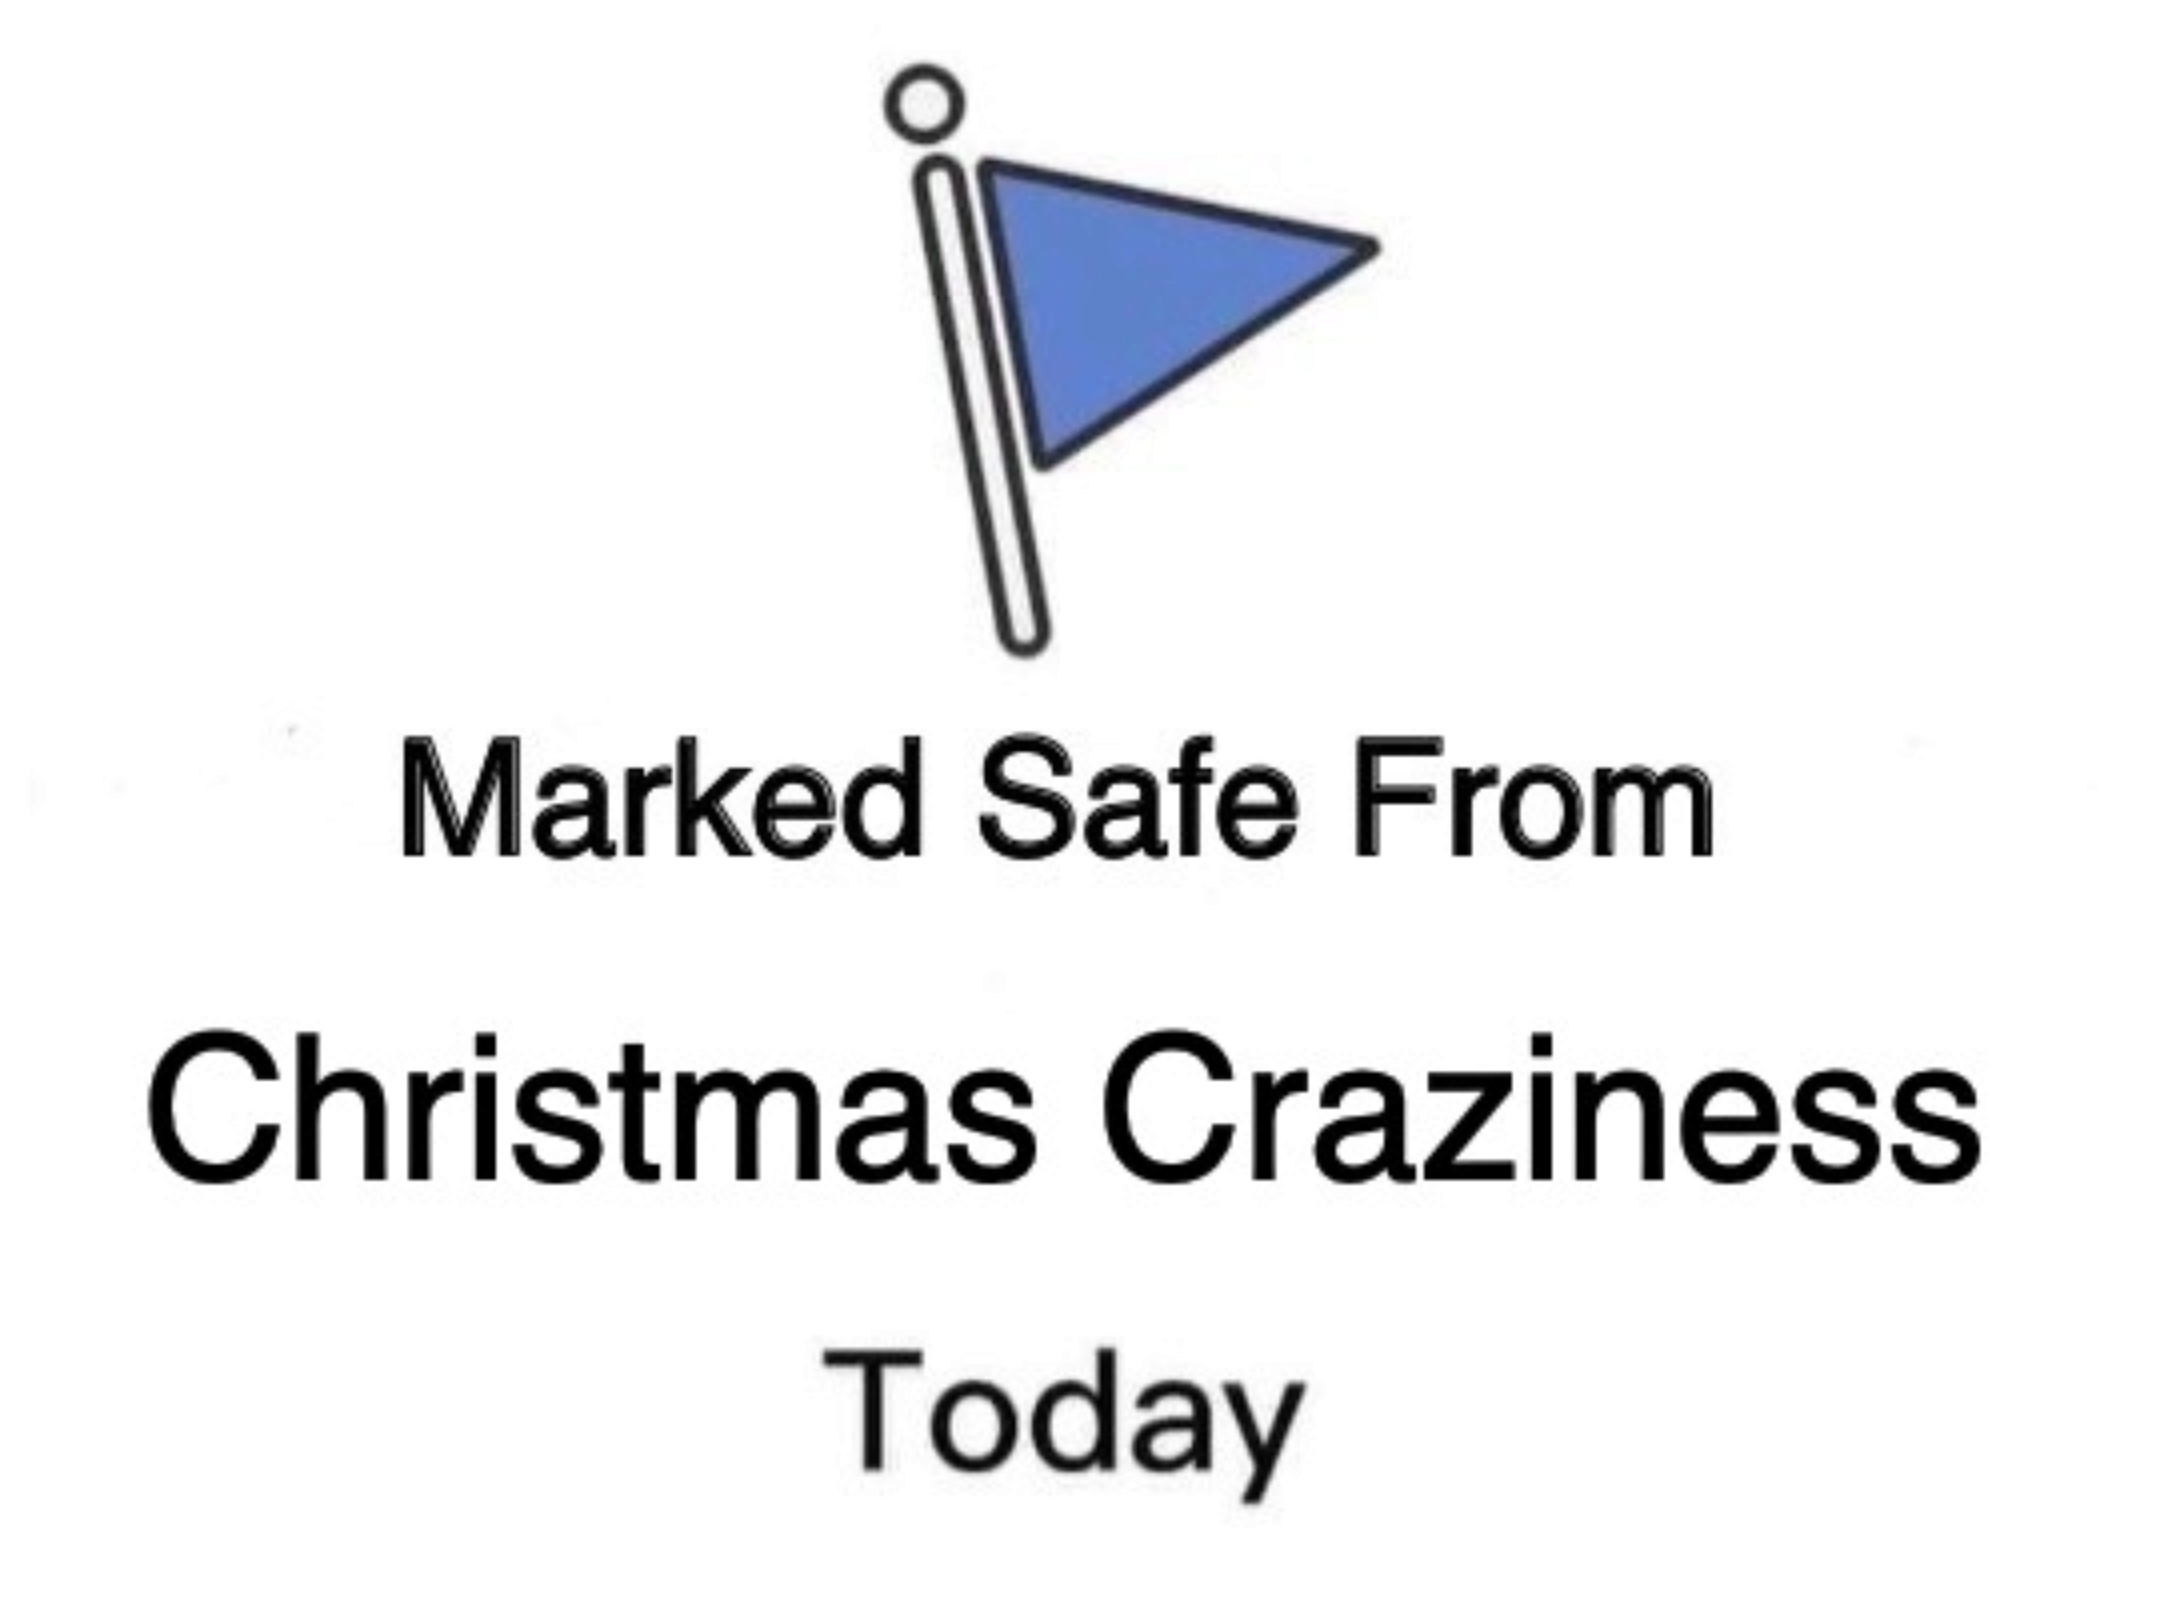 Marked Safe From Christmas Craziness Today